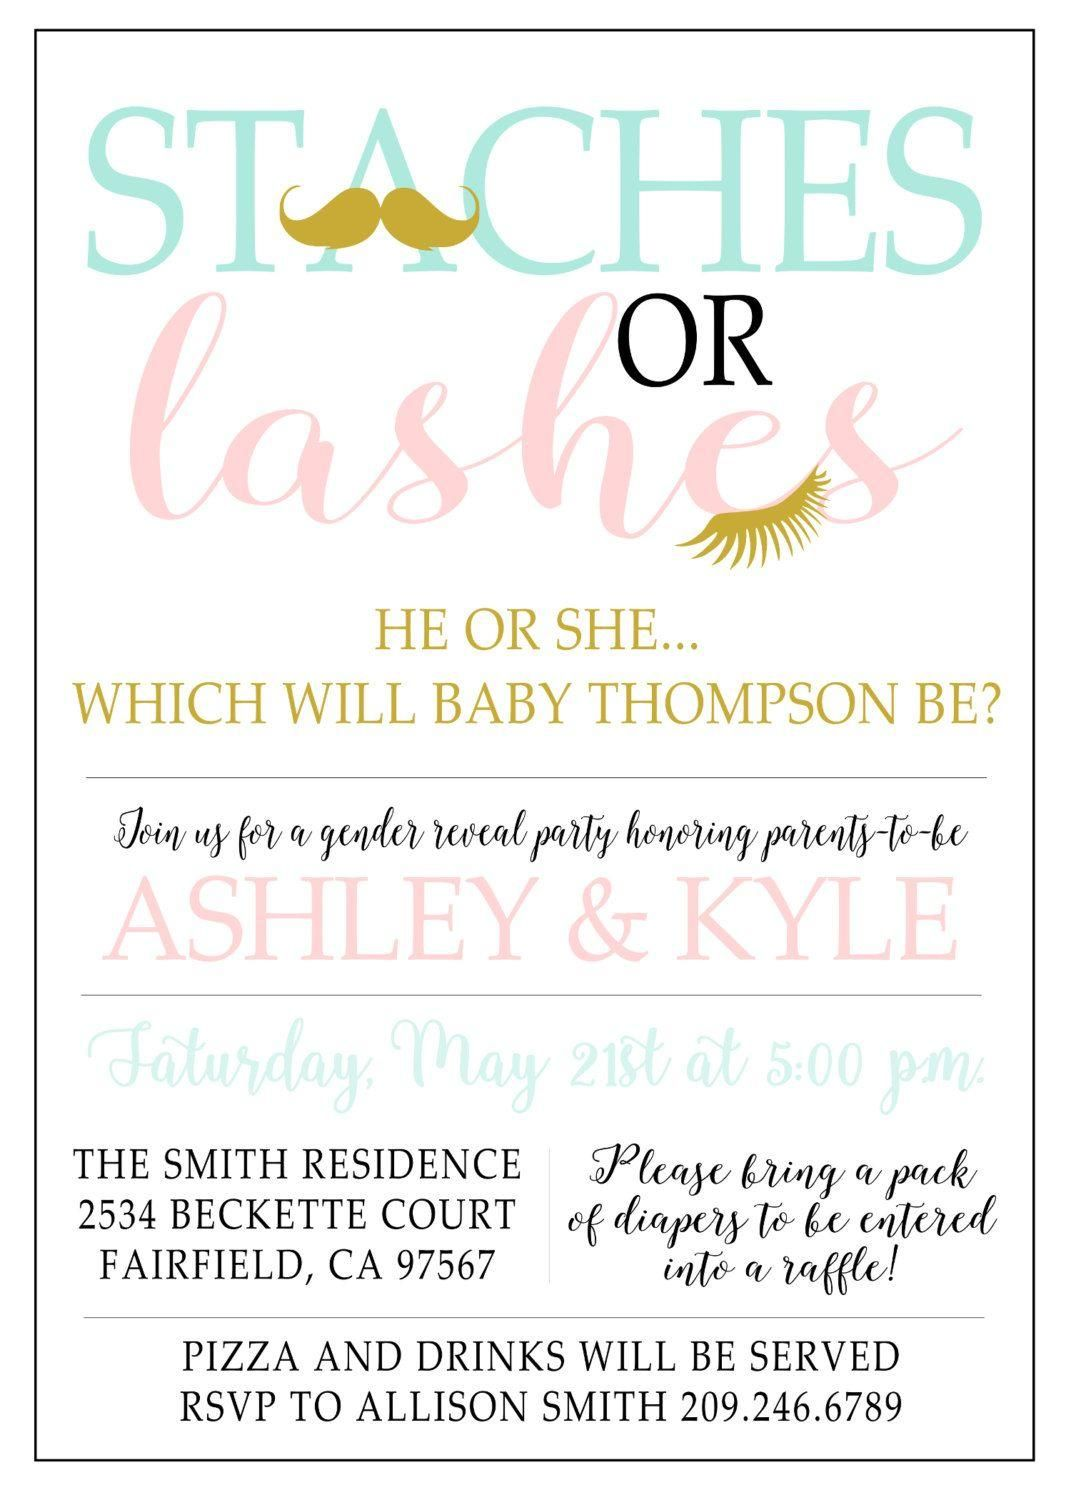 16 Gender Reveal Invitation Template Download In 2021 Gender Reveal Invitations Printable Gender Reveal Invitations Gender Reveal Party